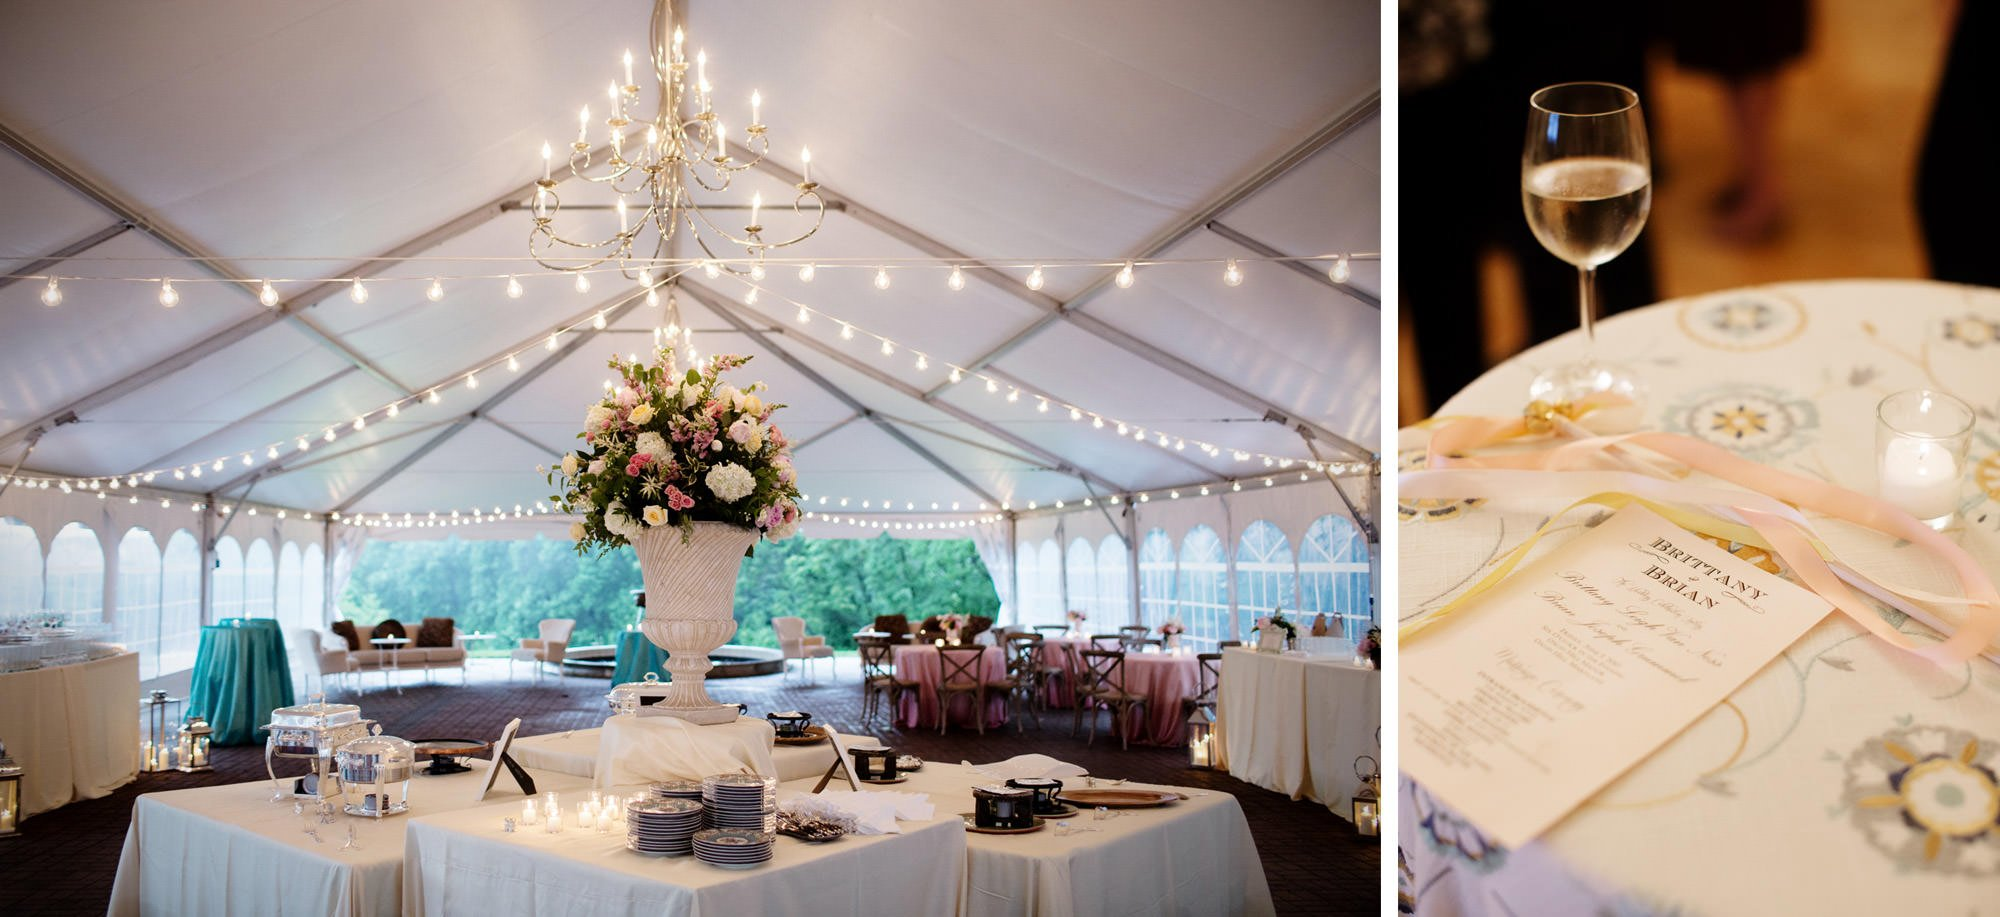 Wedding day details at Oxon Hill Manor.